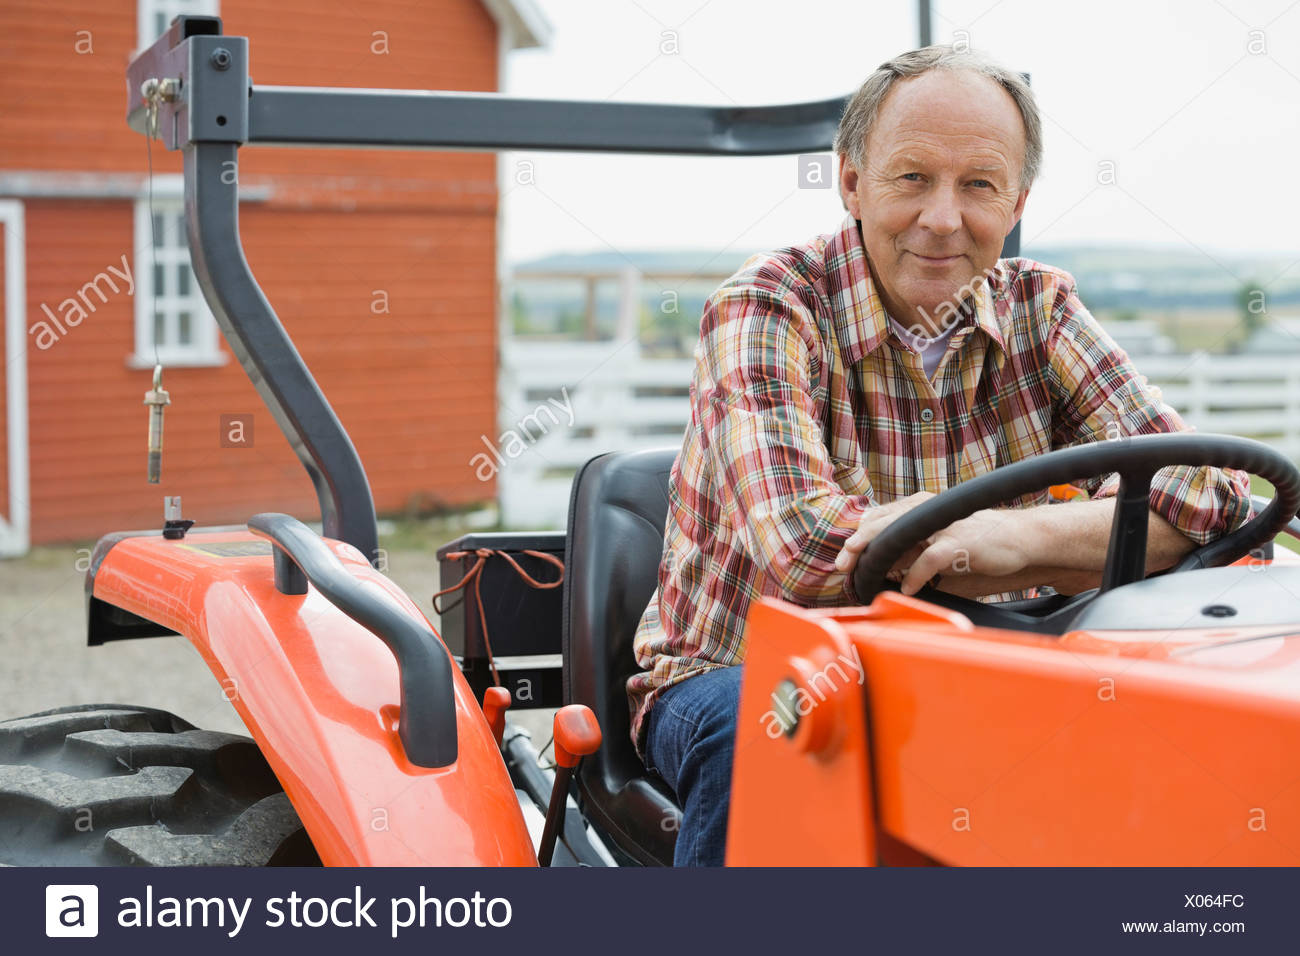 Tractor Seat Stock Photos Amp Tractor Seat Stock Images Alamy